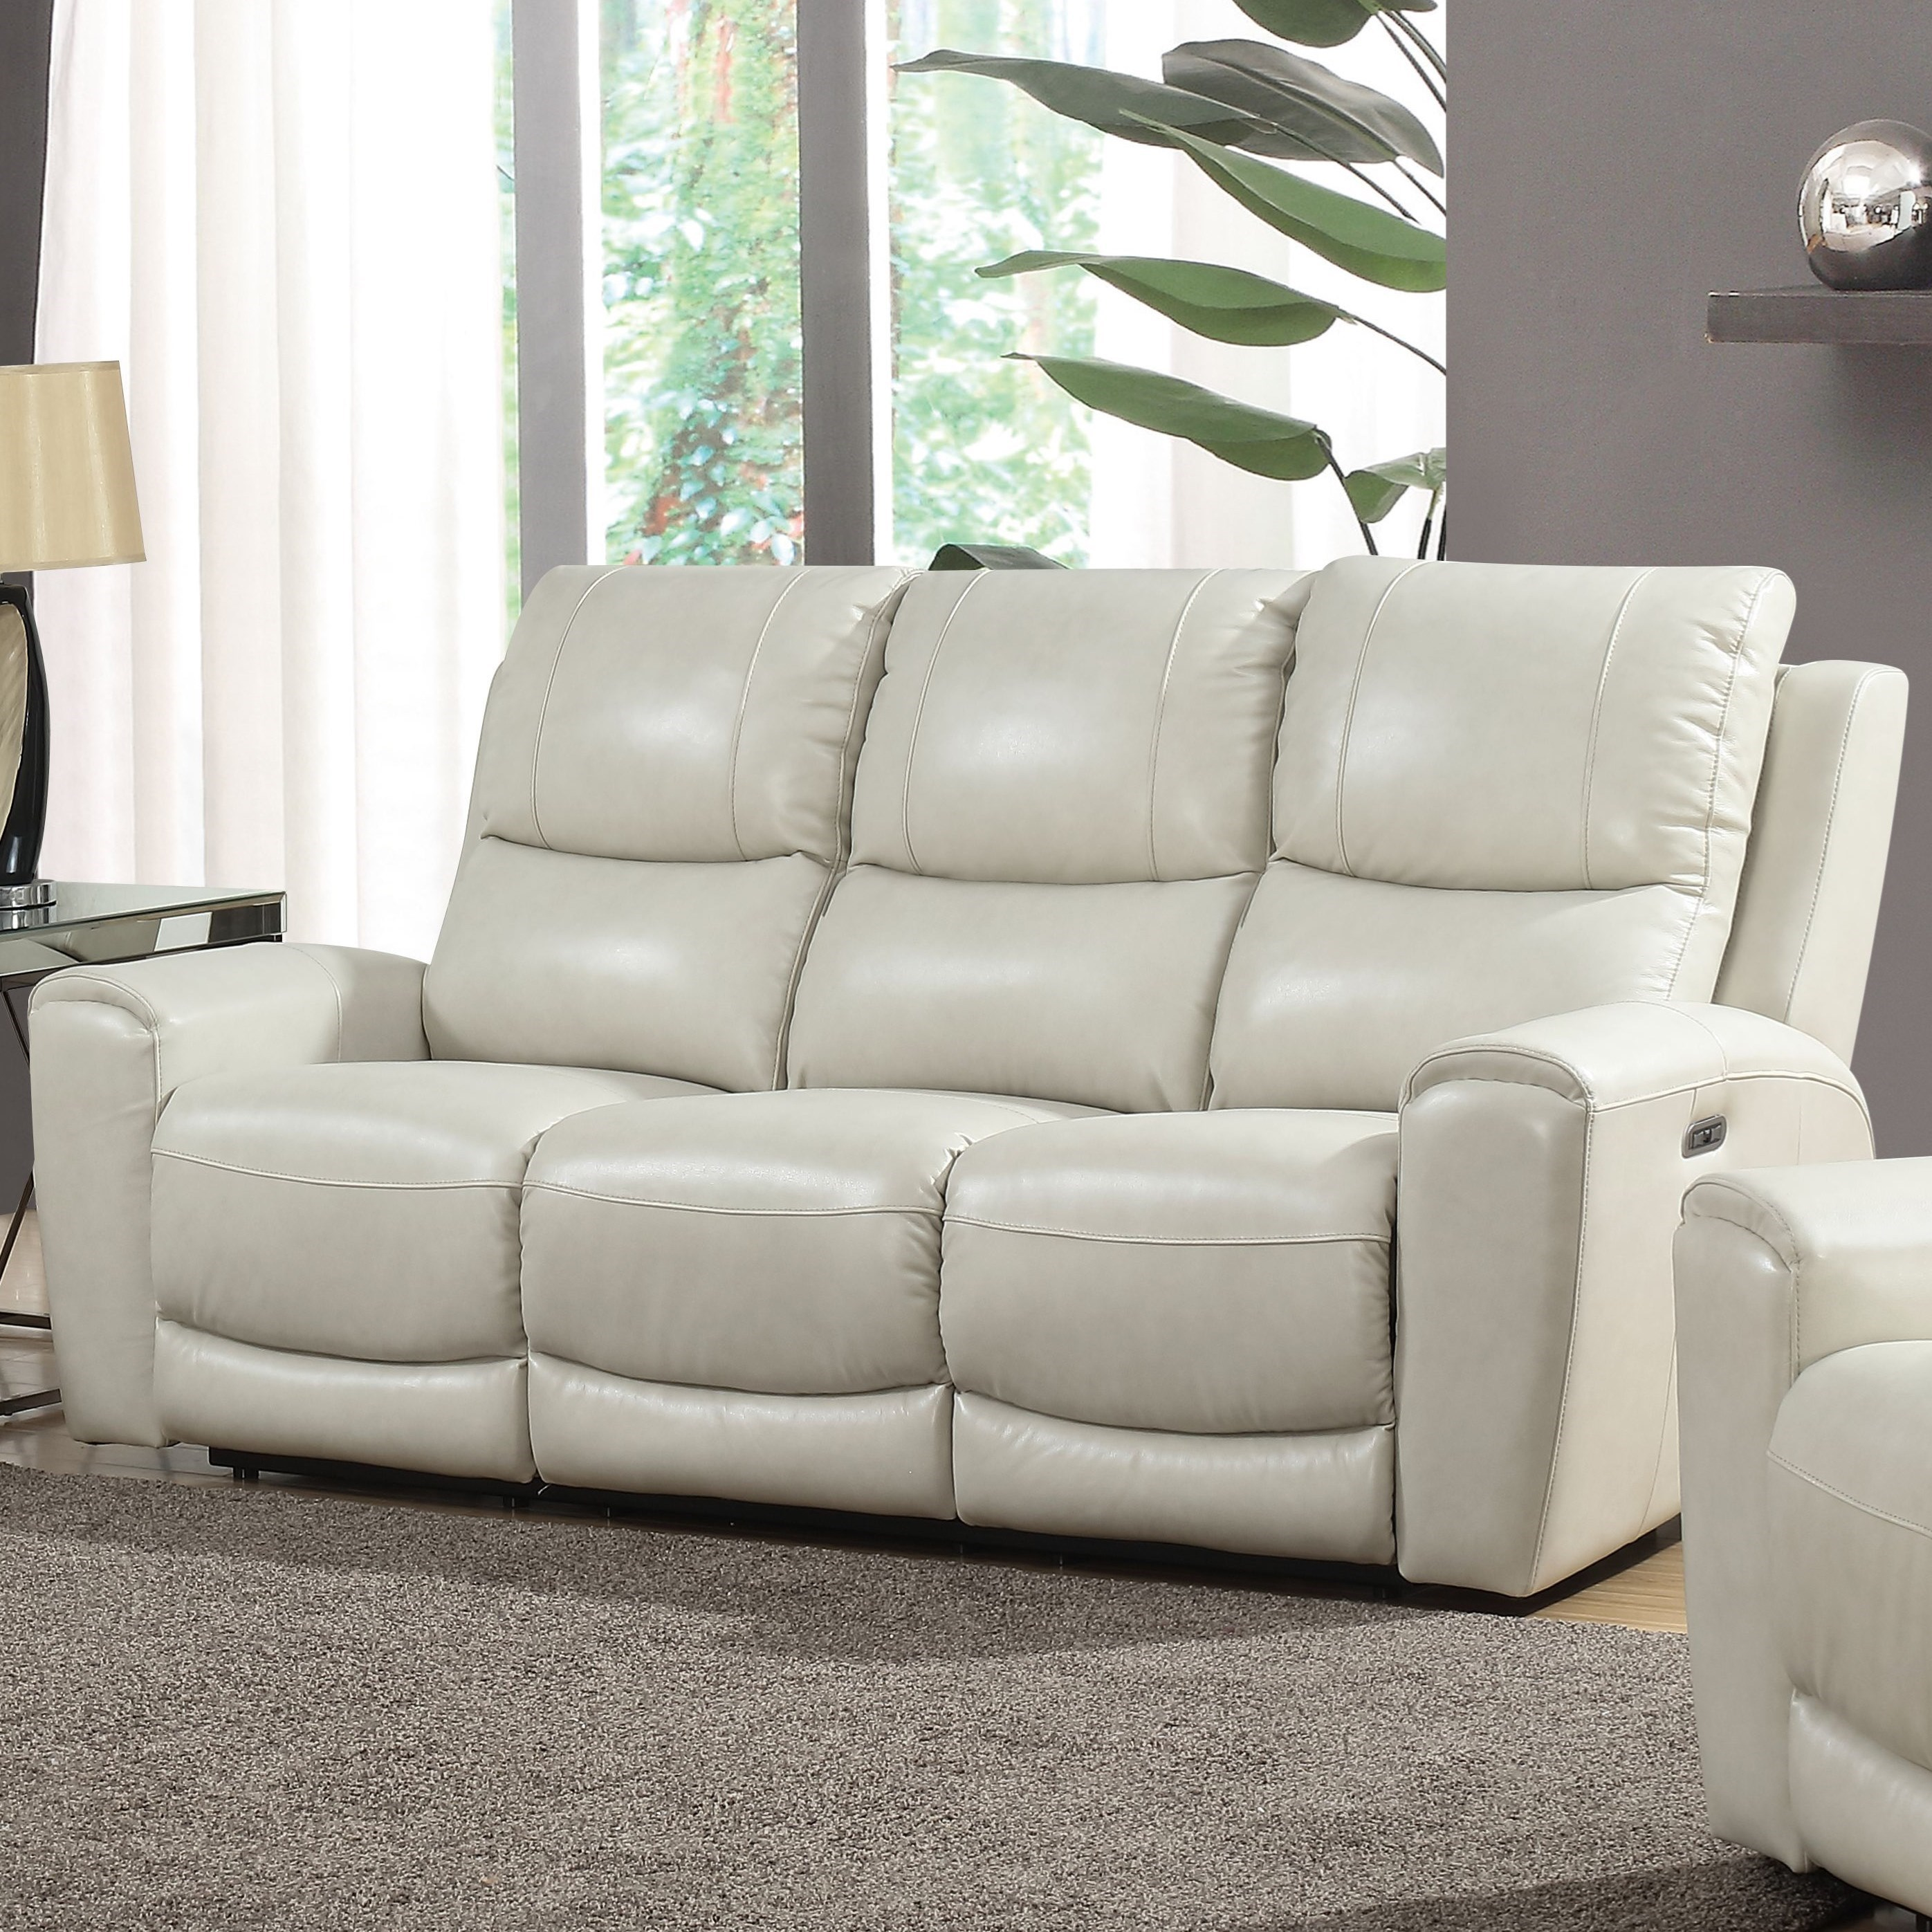 Laurel Power Recliner Sofa by Steve Silver at Northeast Factory Direct